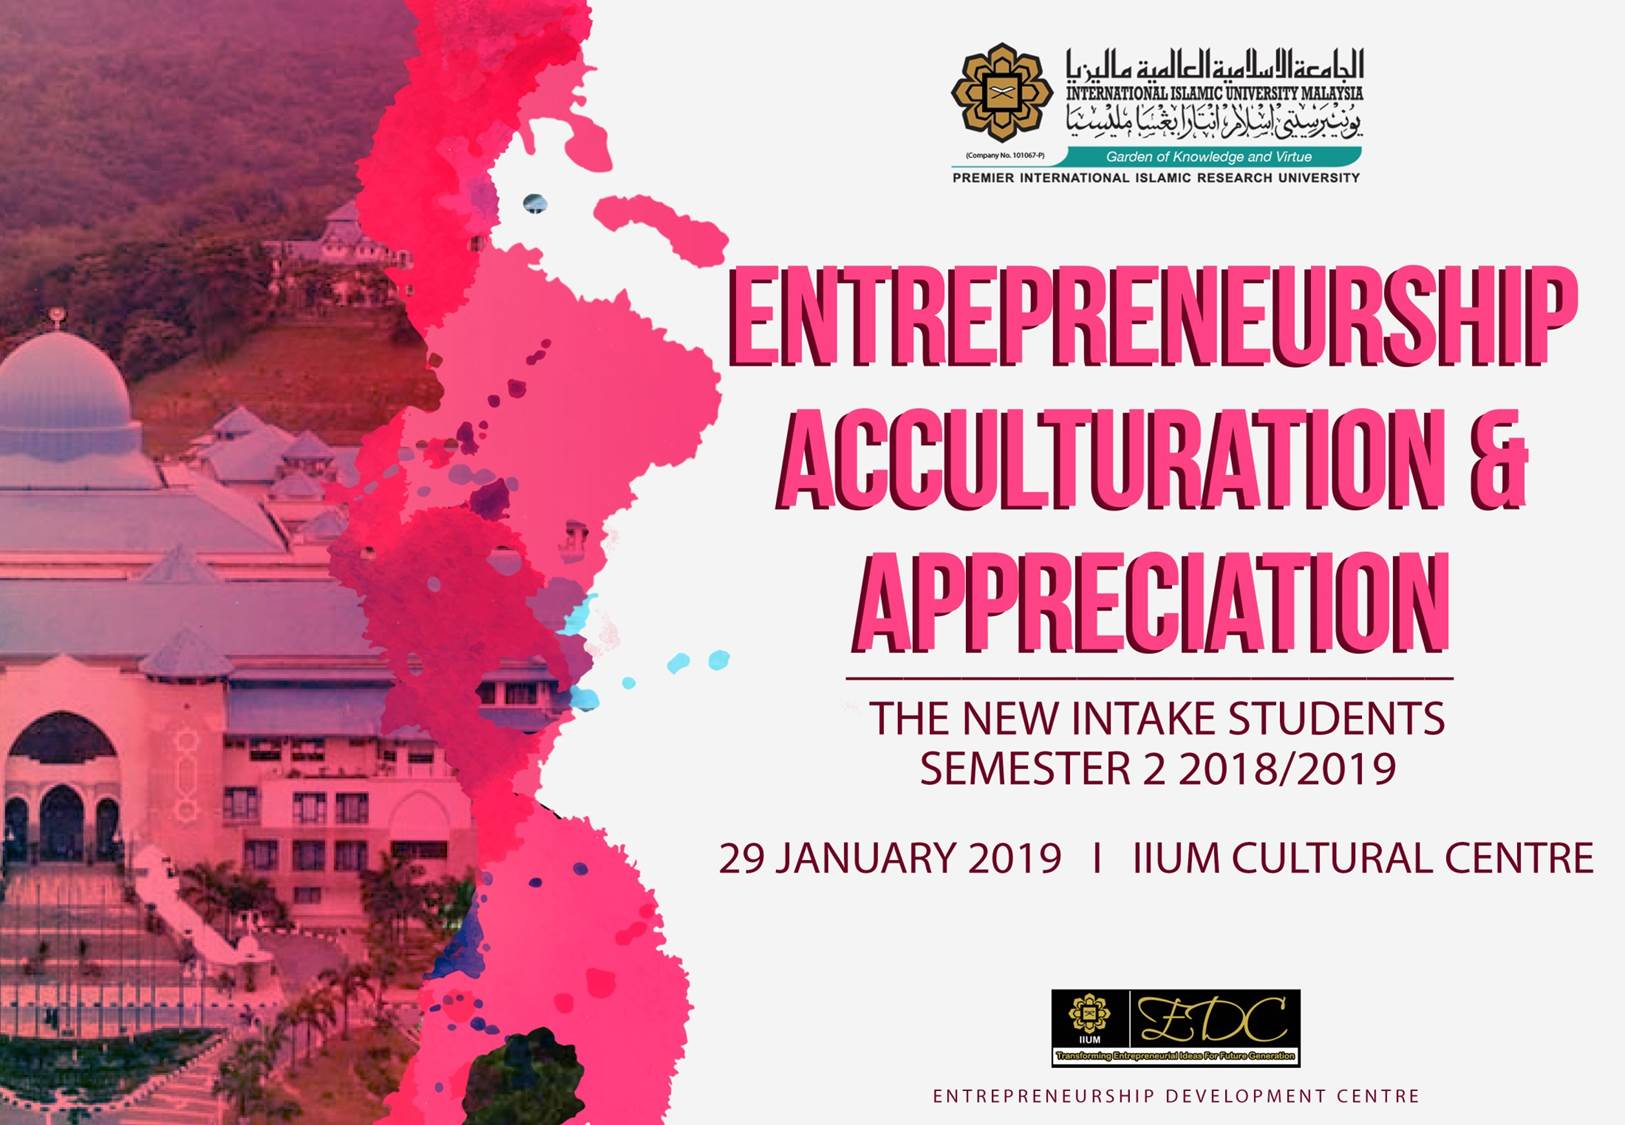 Entrepreneurship Acculturation and Appreciation -IIUM Gombak Campus ( For New Students, Semester 2, 2018/2019)